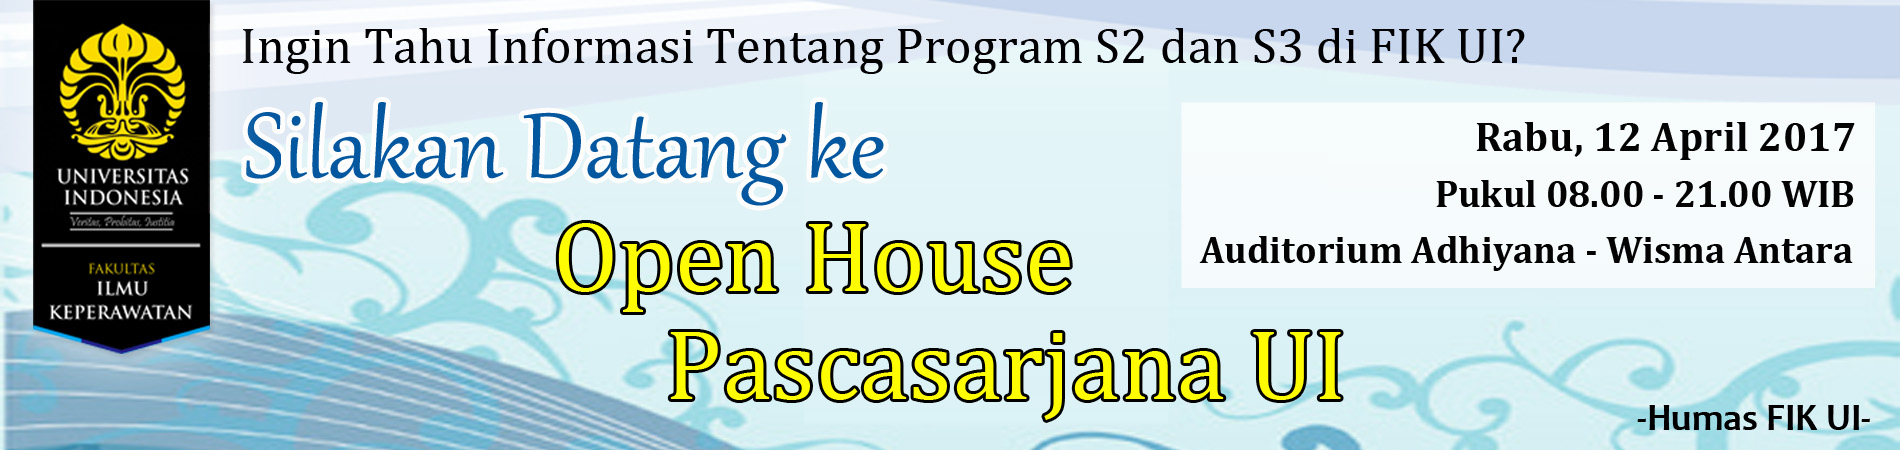 Web-Banner-Open-House-Pasca